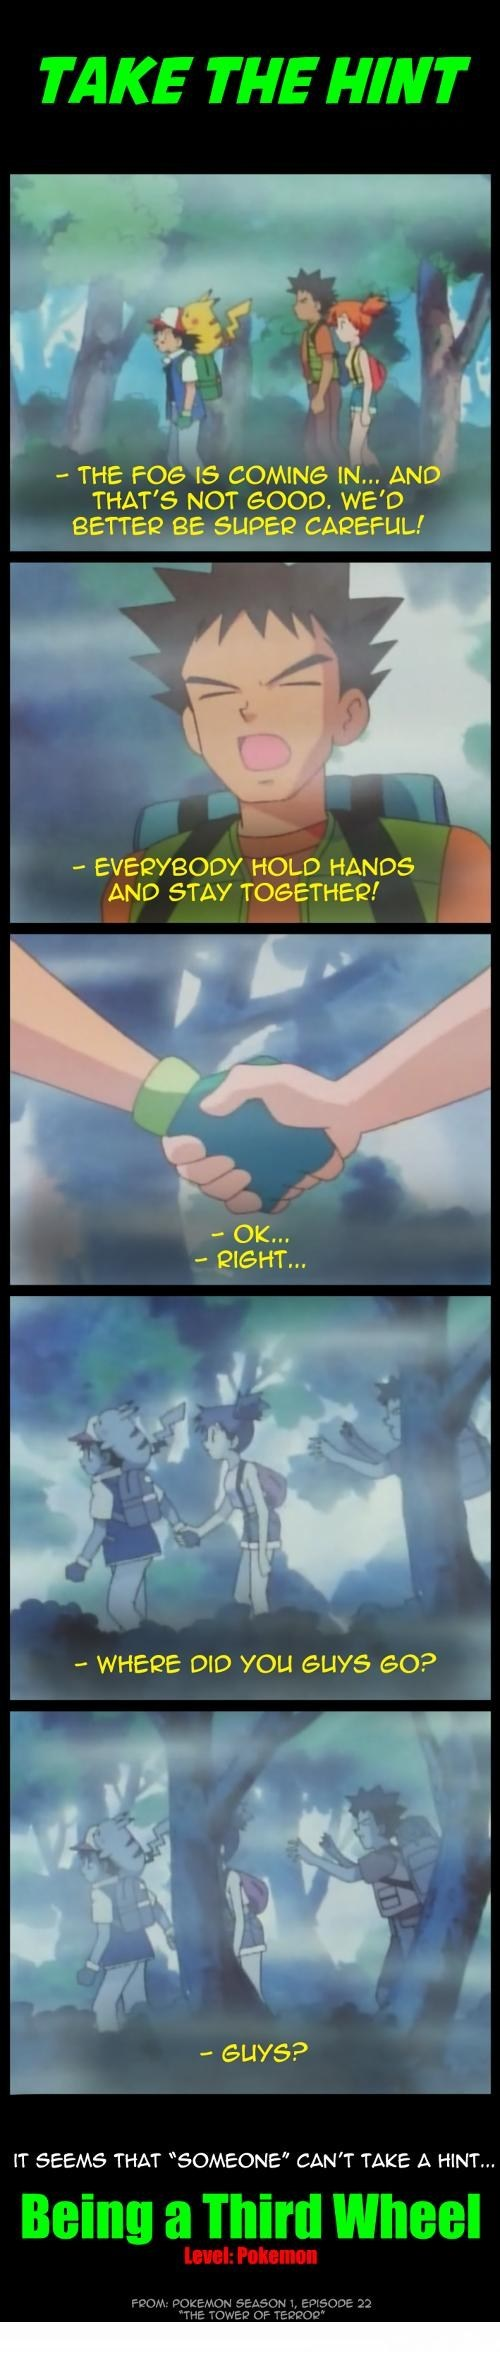 Sad brock anime third wheel - 7168425216